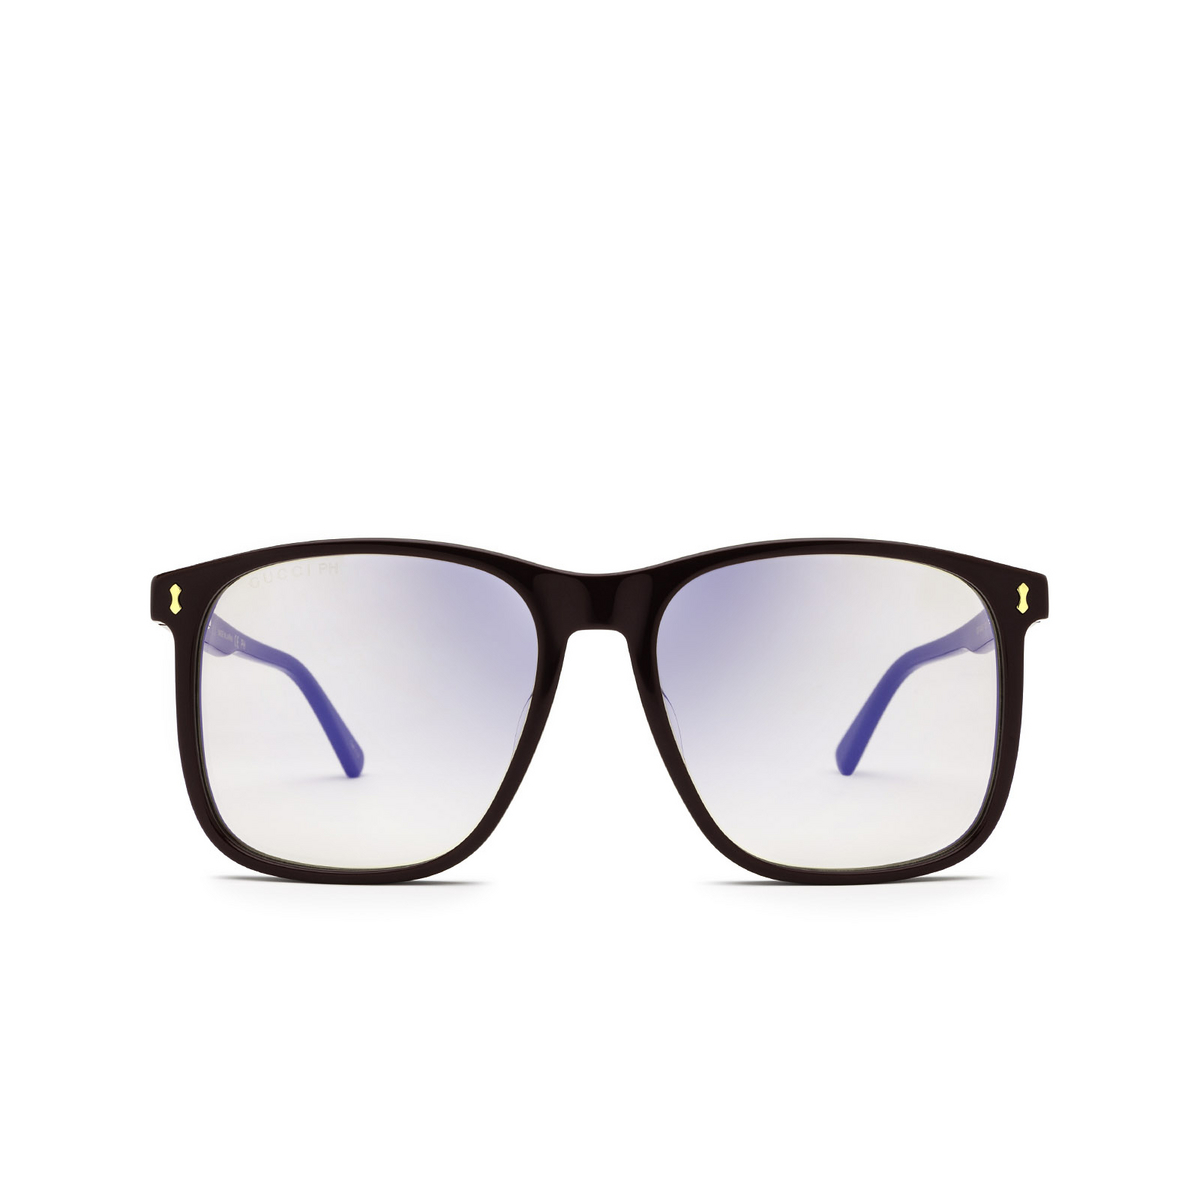 Gucci® Square Sunglasses: GG1041S color Burgundy 005 - front view.